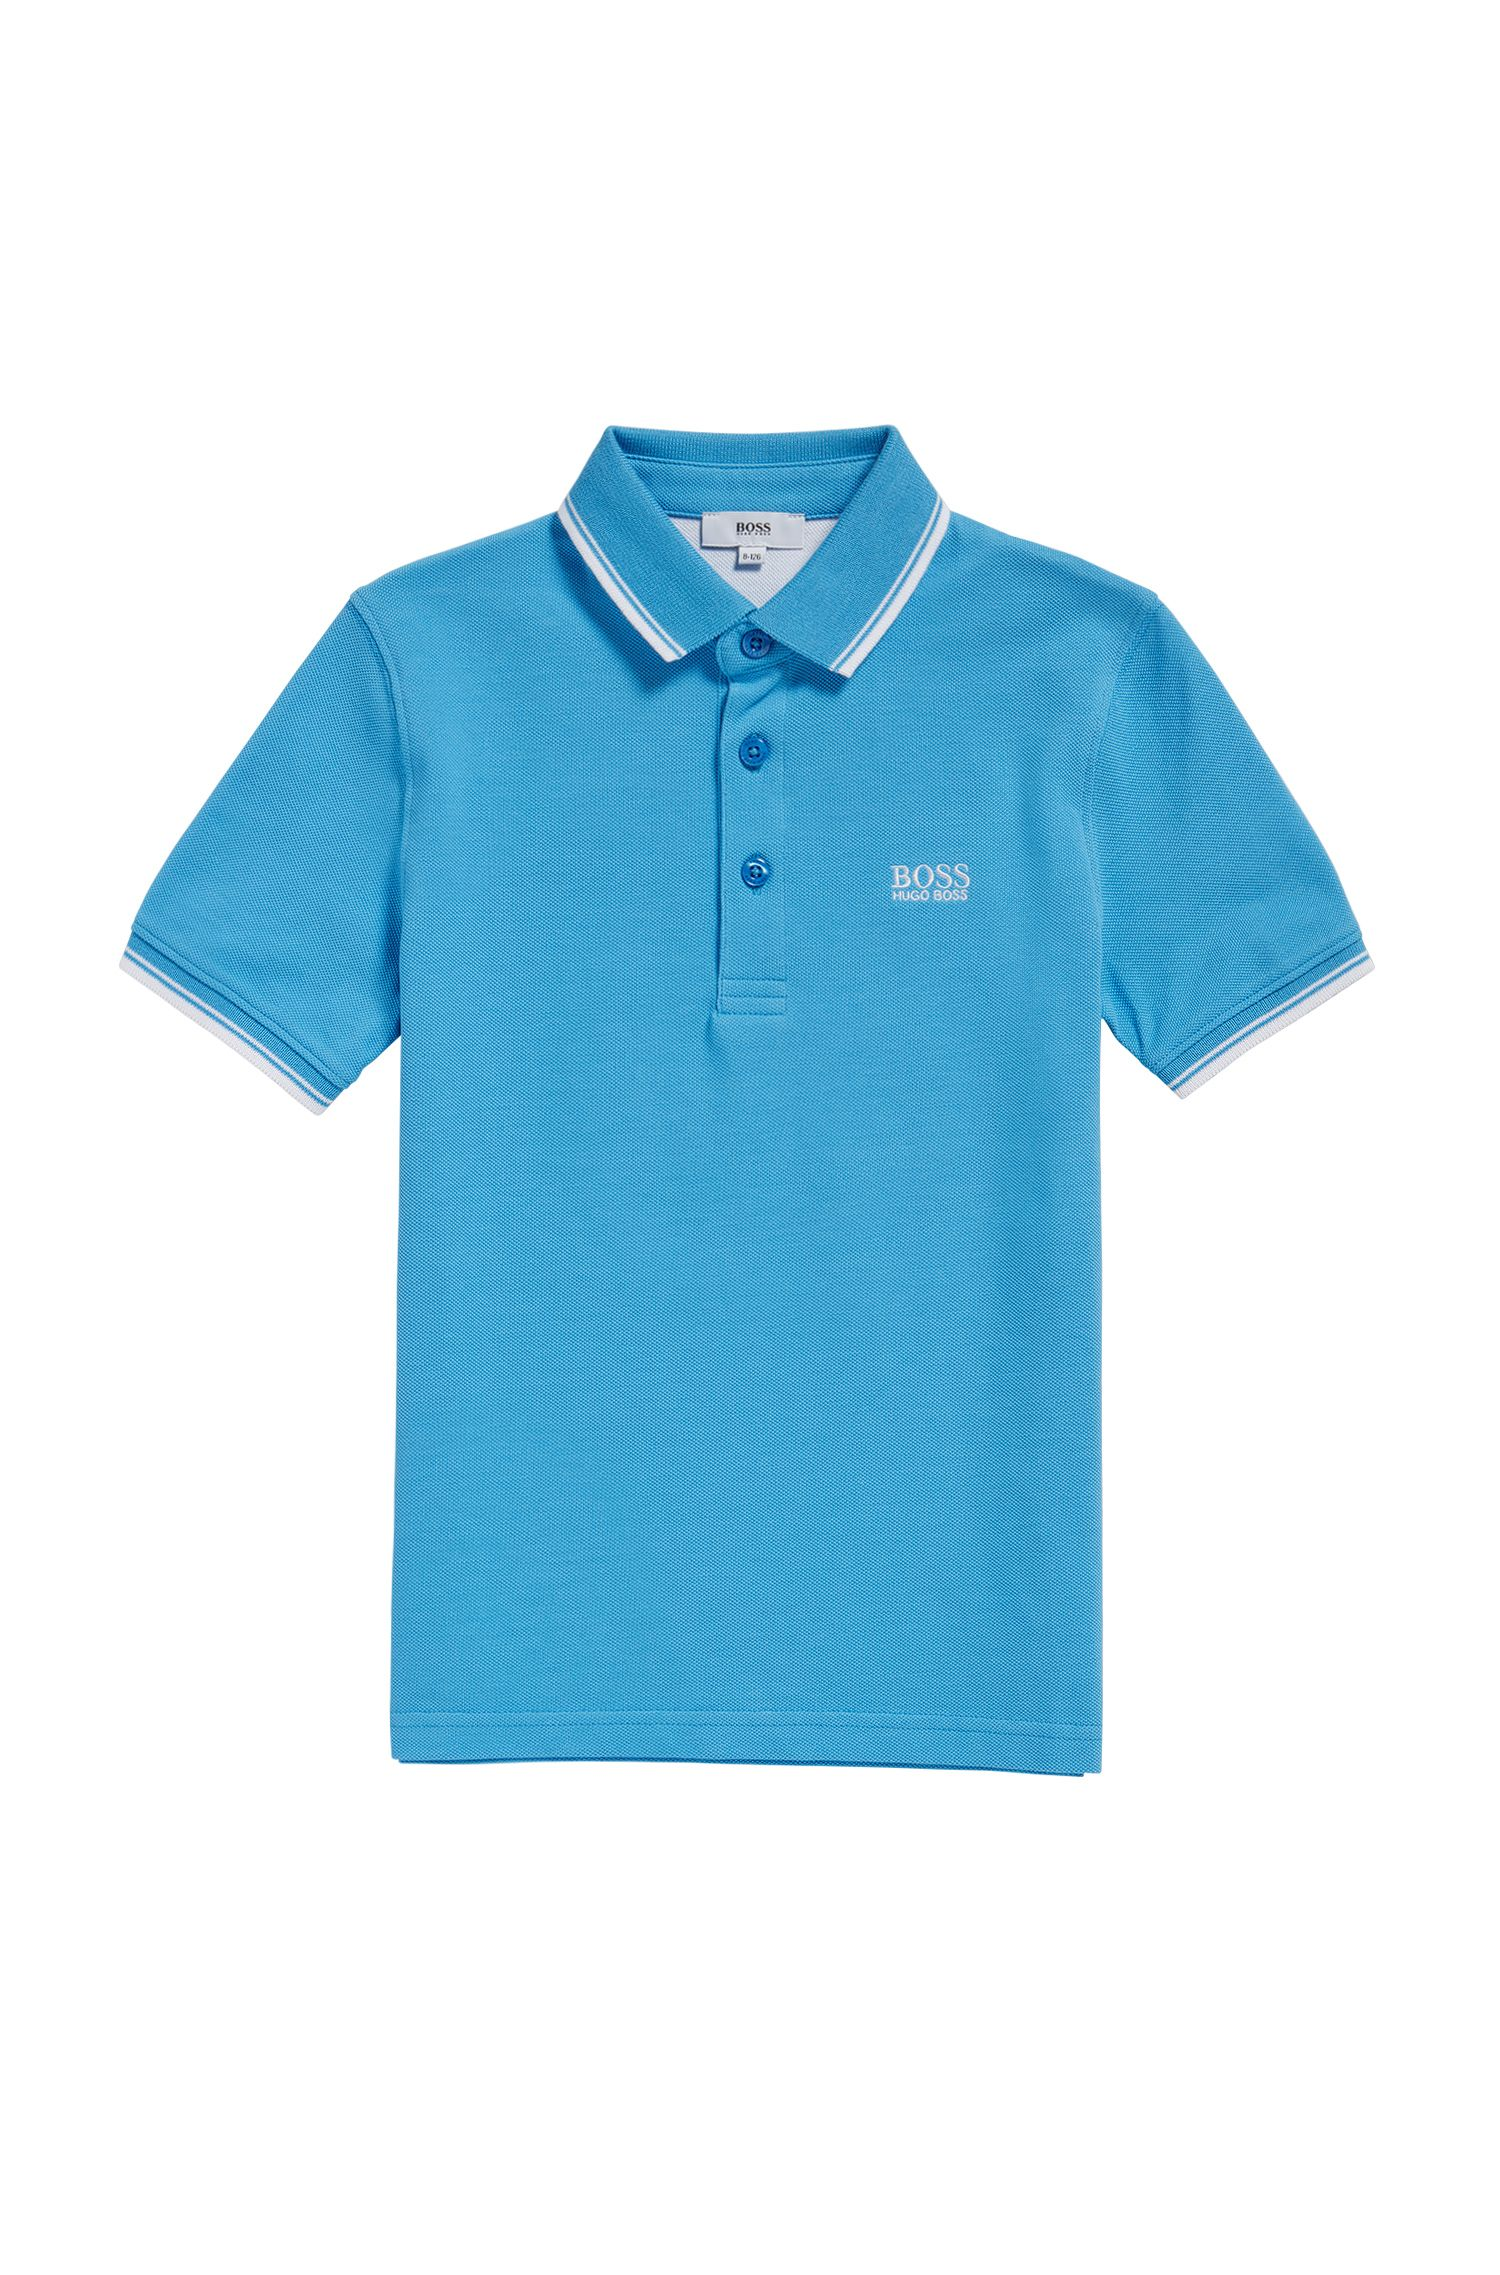 Regular-Fit Kids-Poloshirt aus Baumwoll-Piqué